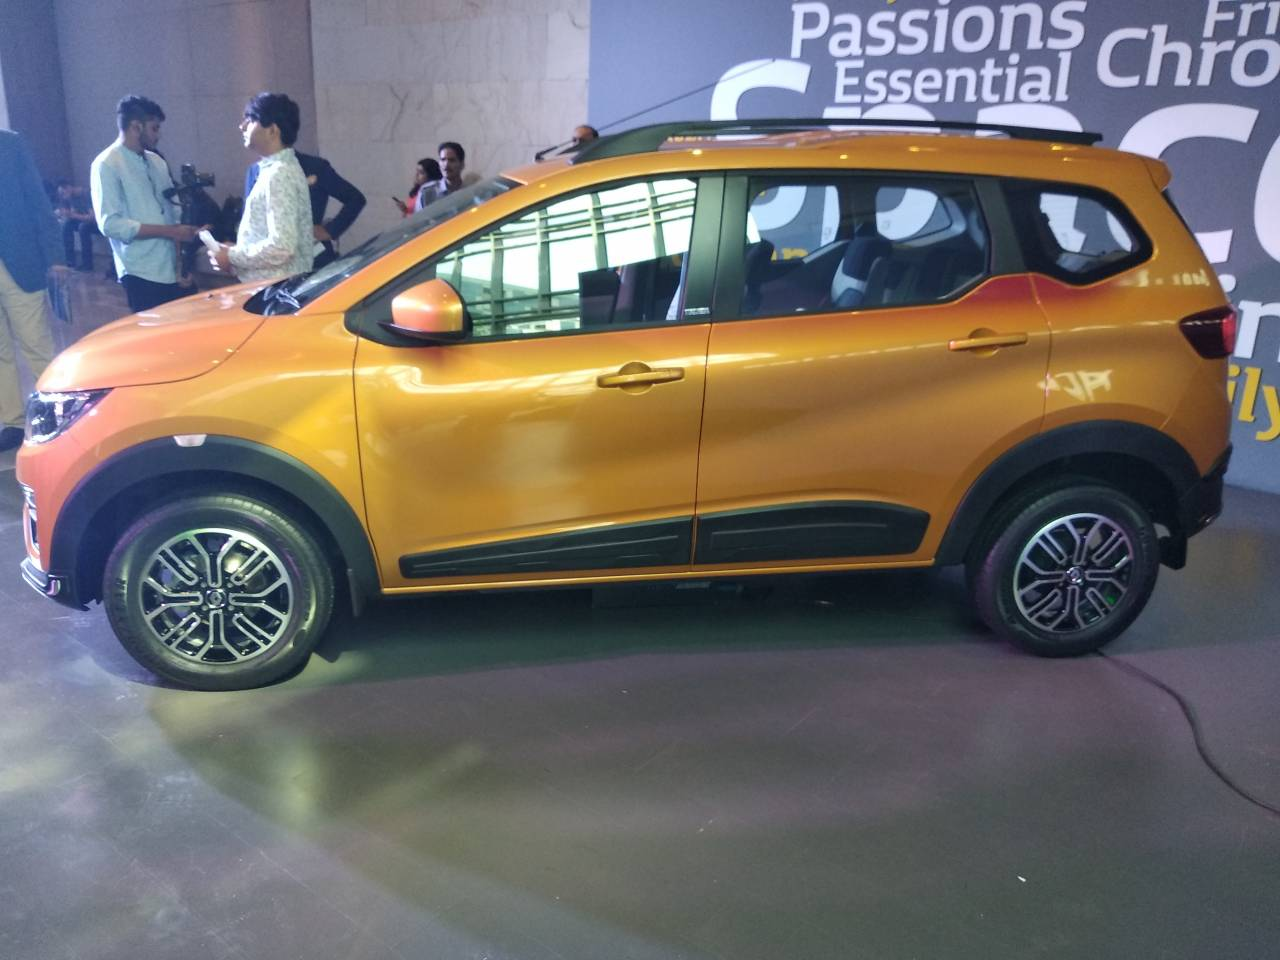 Triber will compete against the Maruti Ertiga and Datsun Go+. Mahindra recently launched the Marazzo positioned at the upper end of the segment. (Image: Moneycontrol)